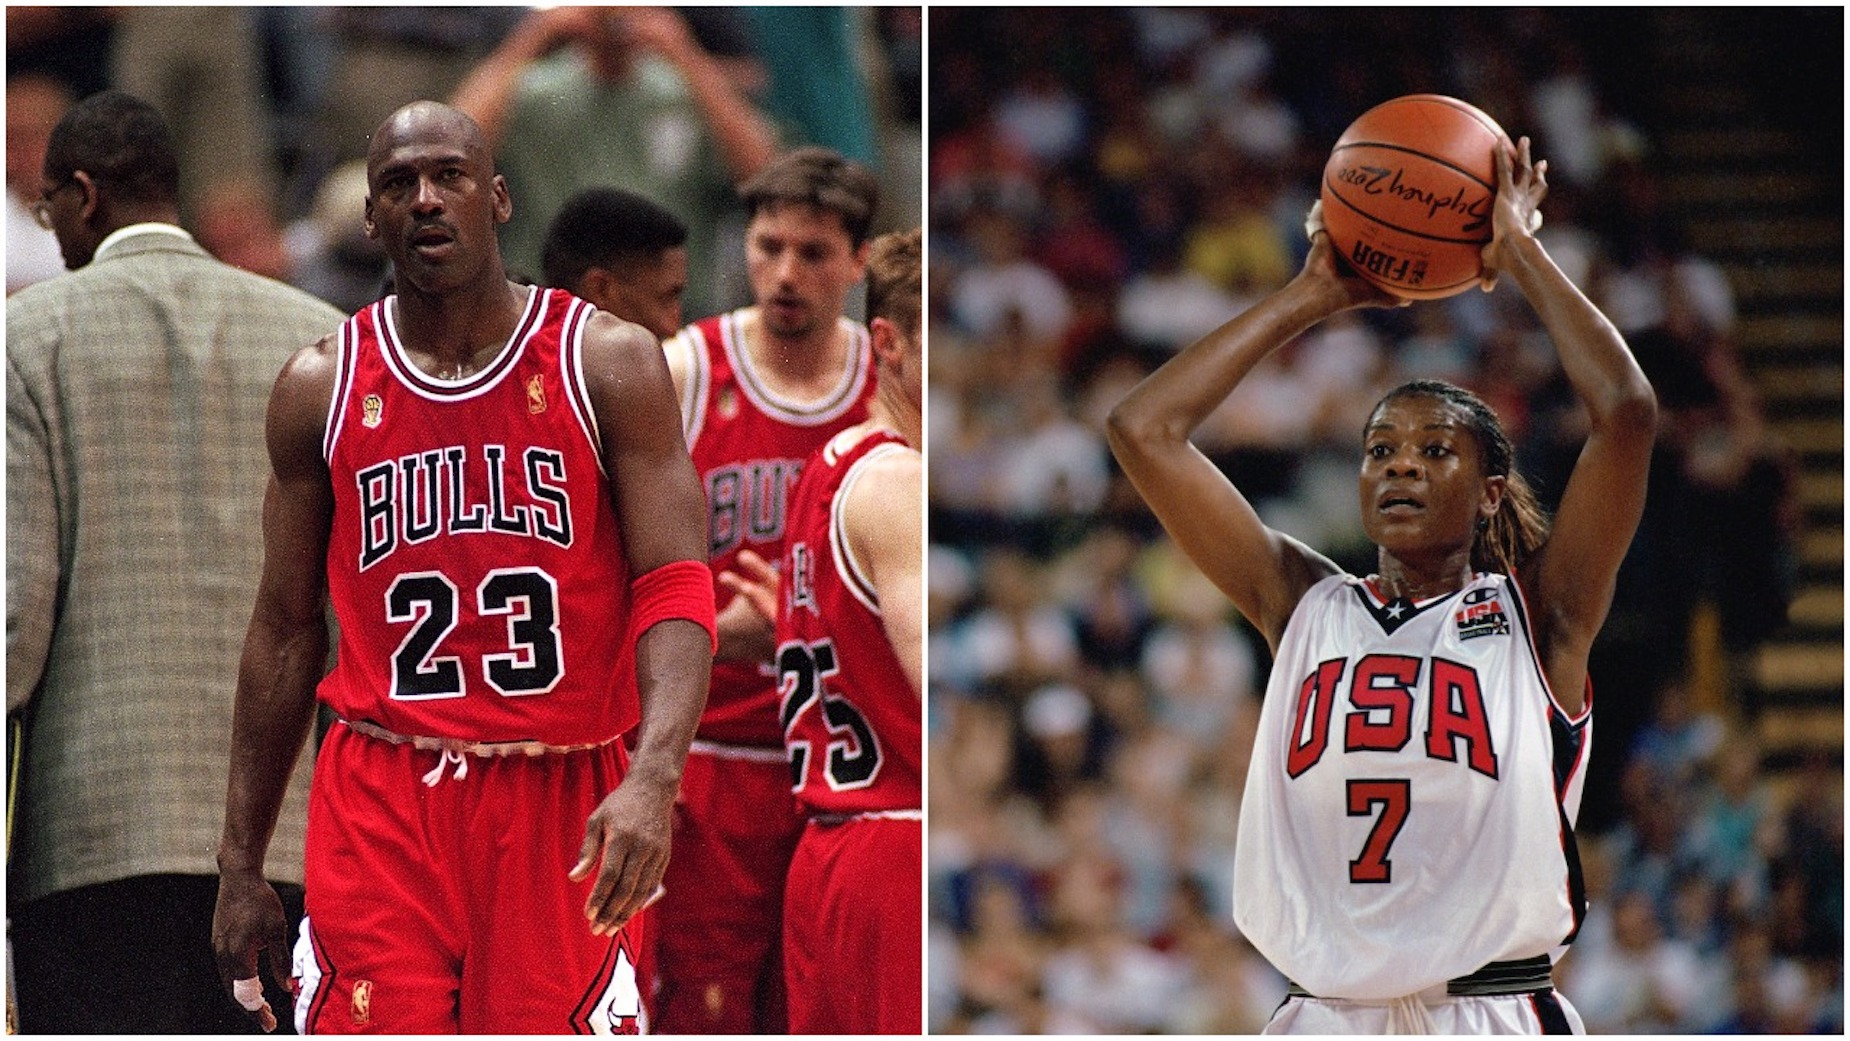 Michael Jordan (L) and Sheryl Swoopes (R) are both basketball legends.